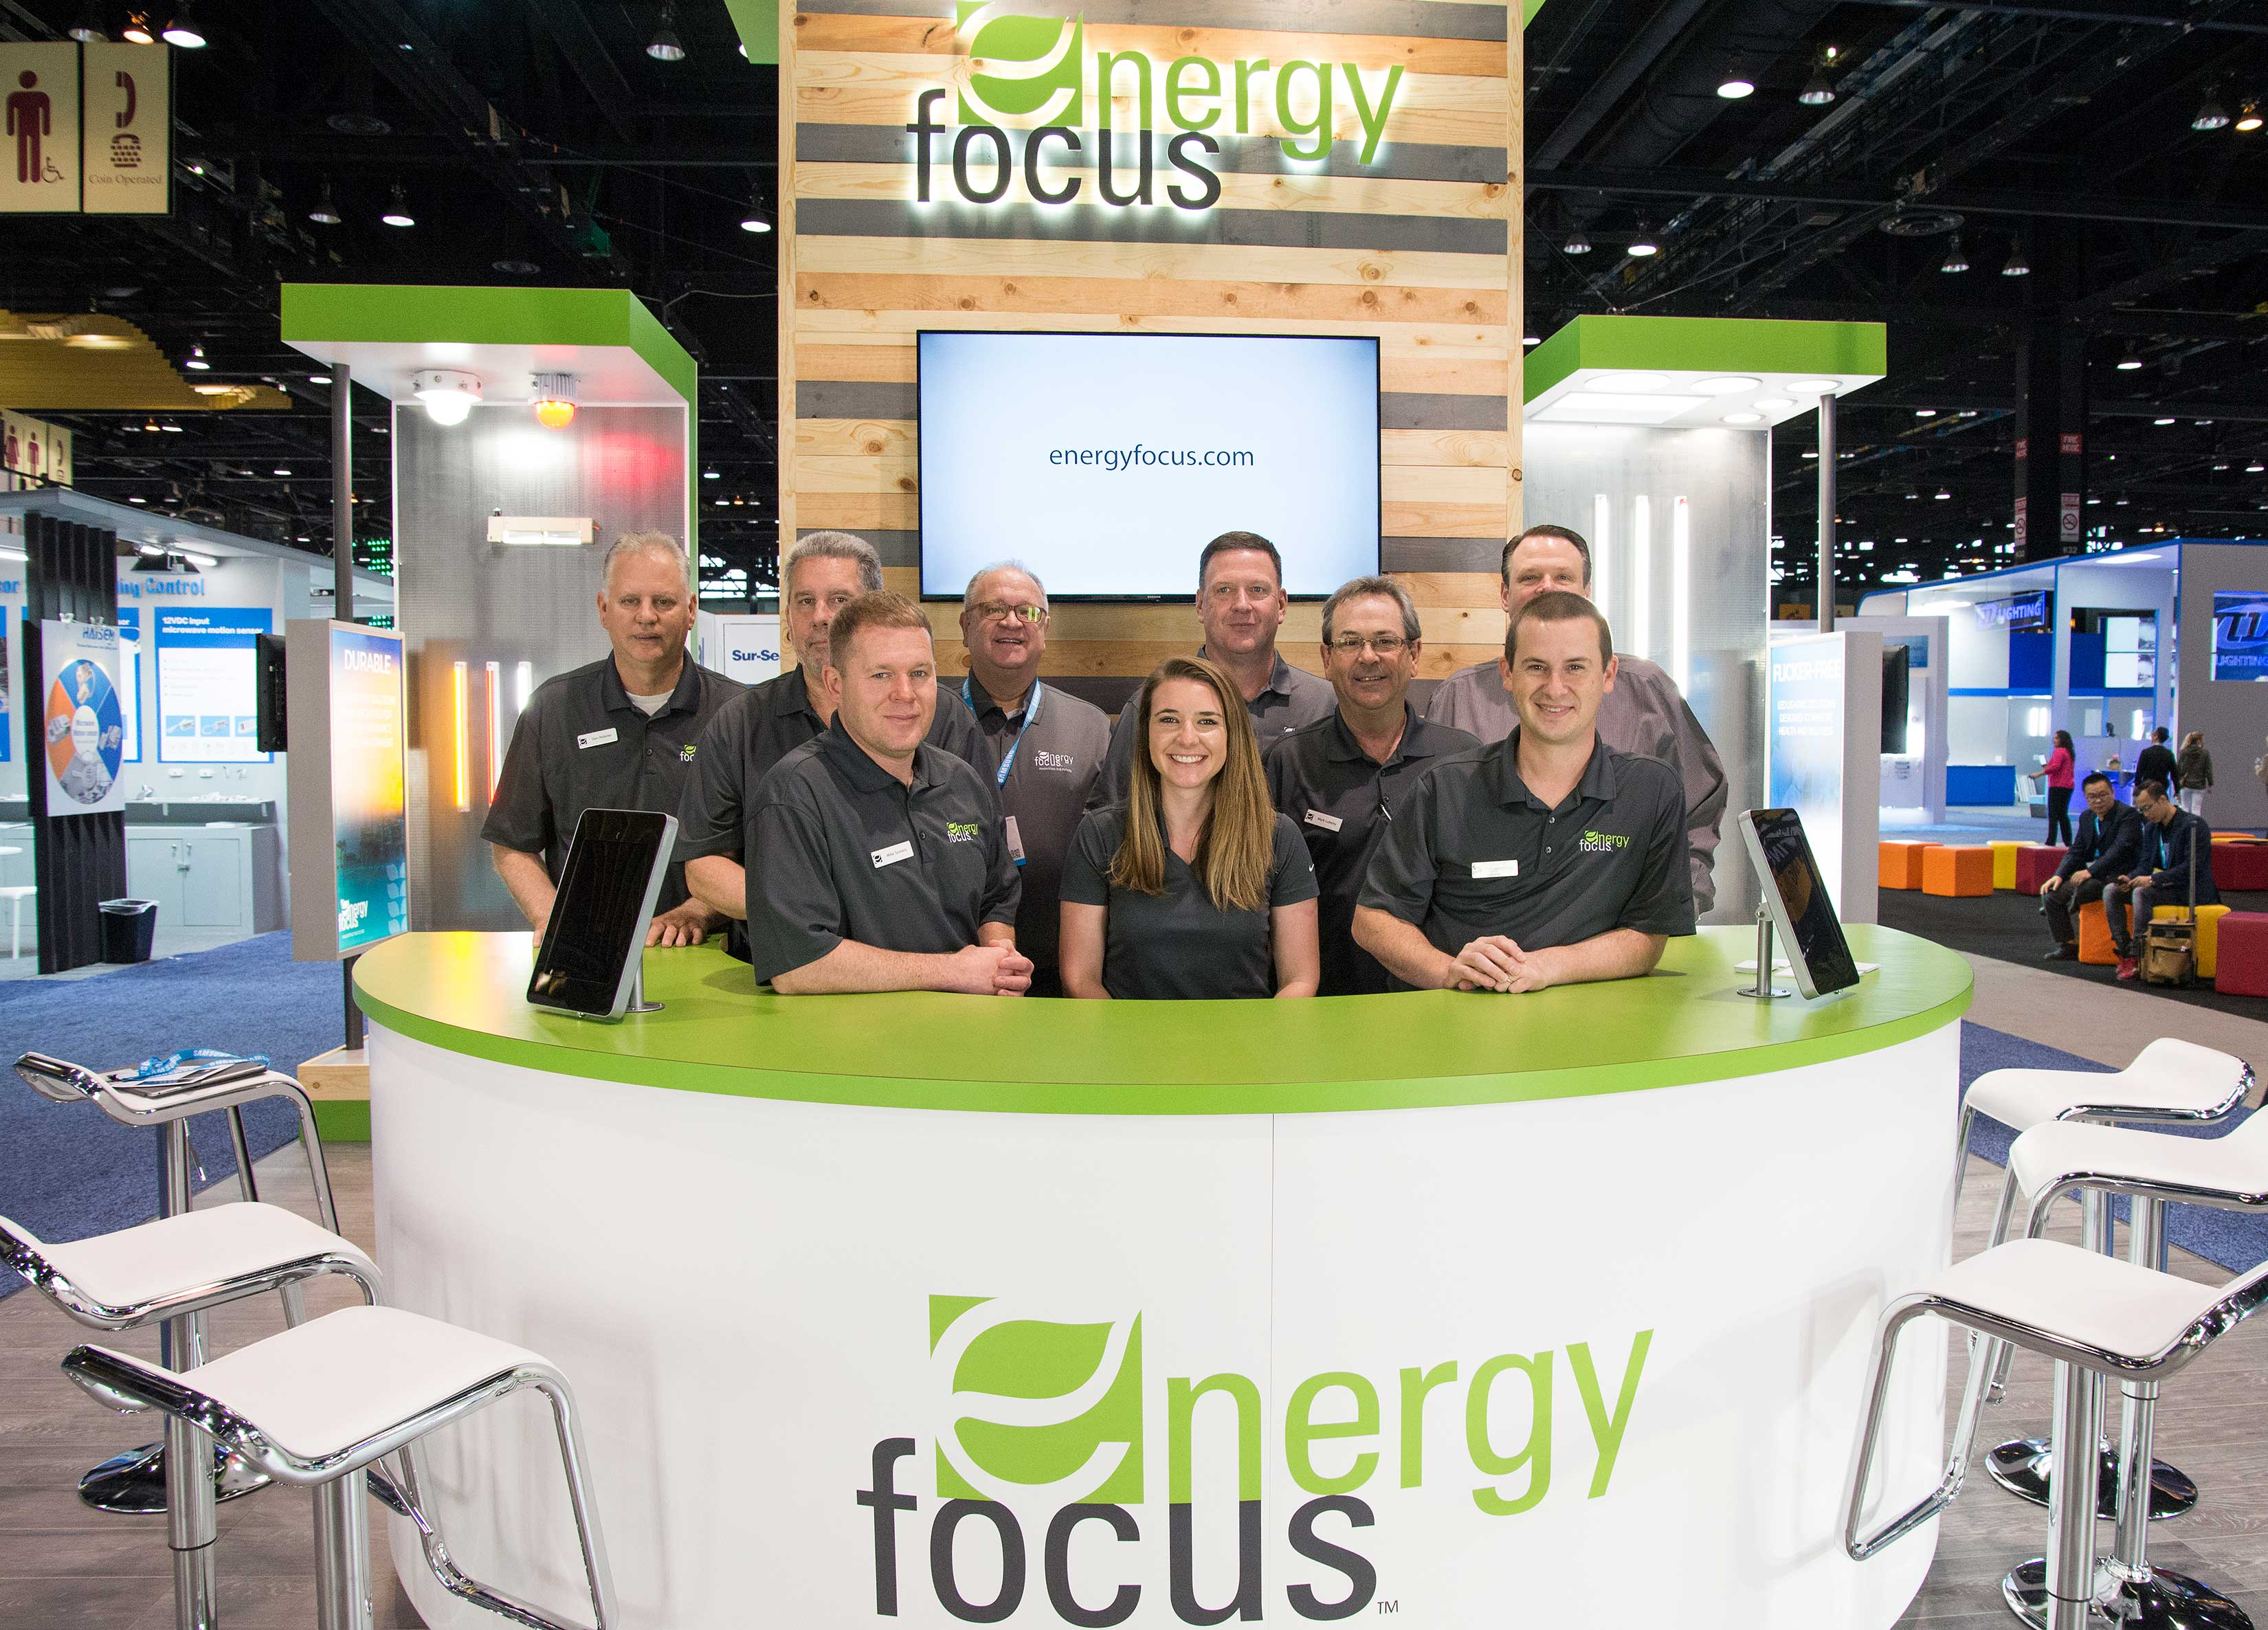 Energy Focus Team at LIGHTFAIR International 2018 Booth